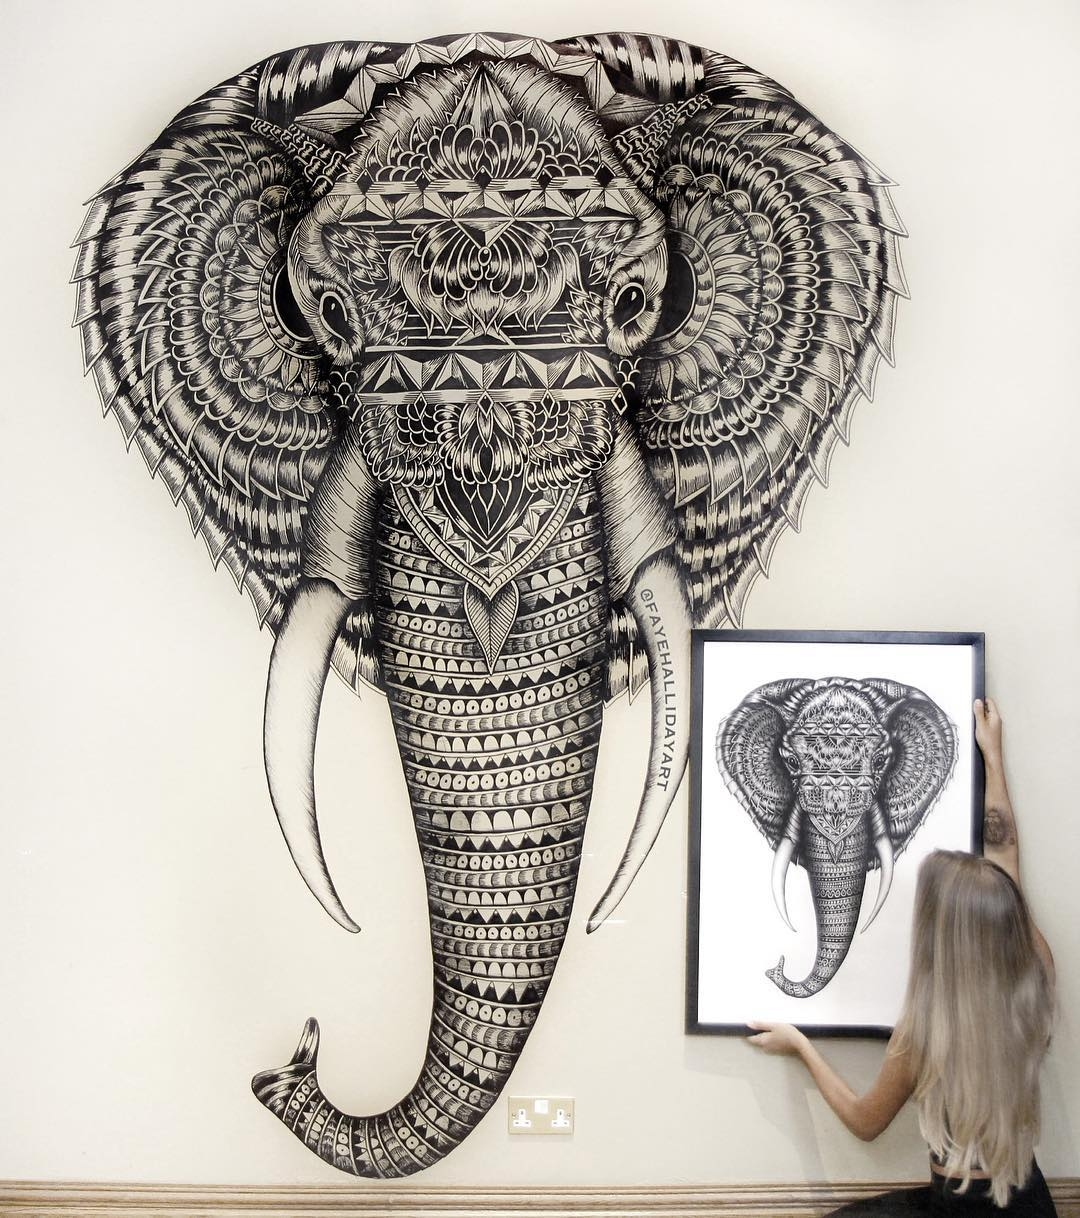 07-Elephant-Faye-Halliday-Haathi-Detailed-Drawings-Representing-Complex-Animal-www-designstack-co